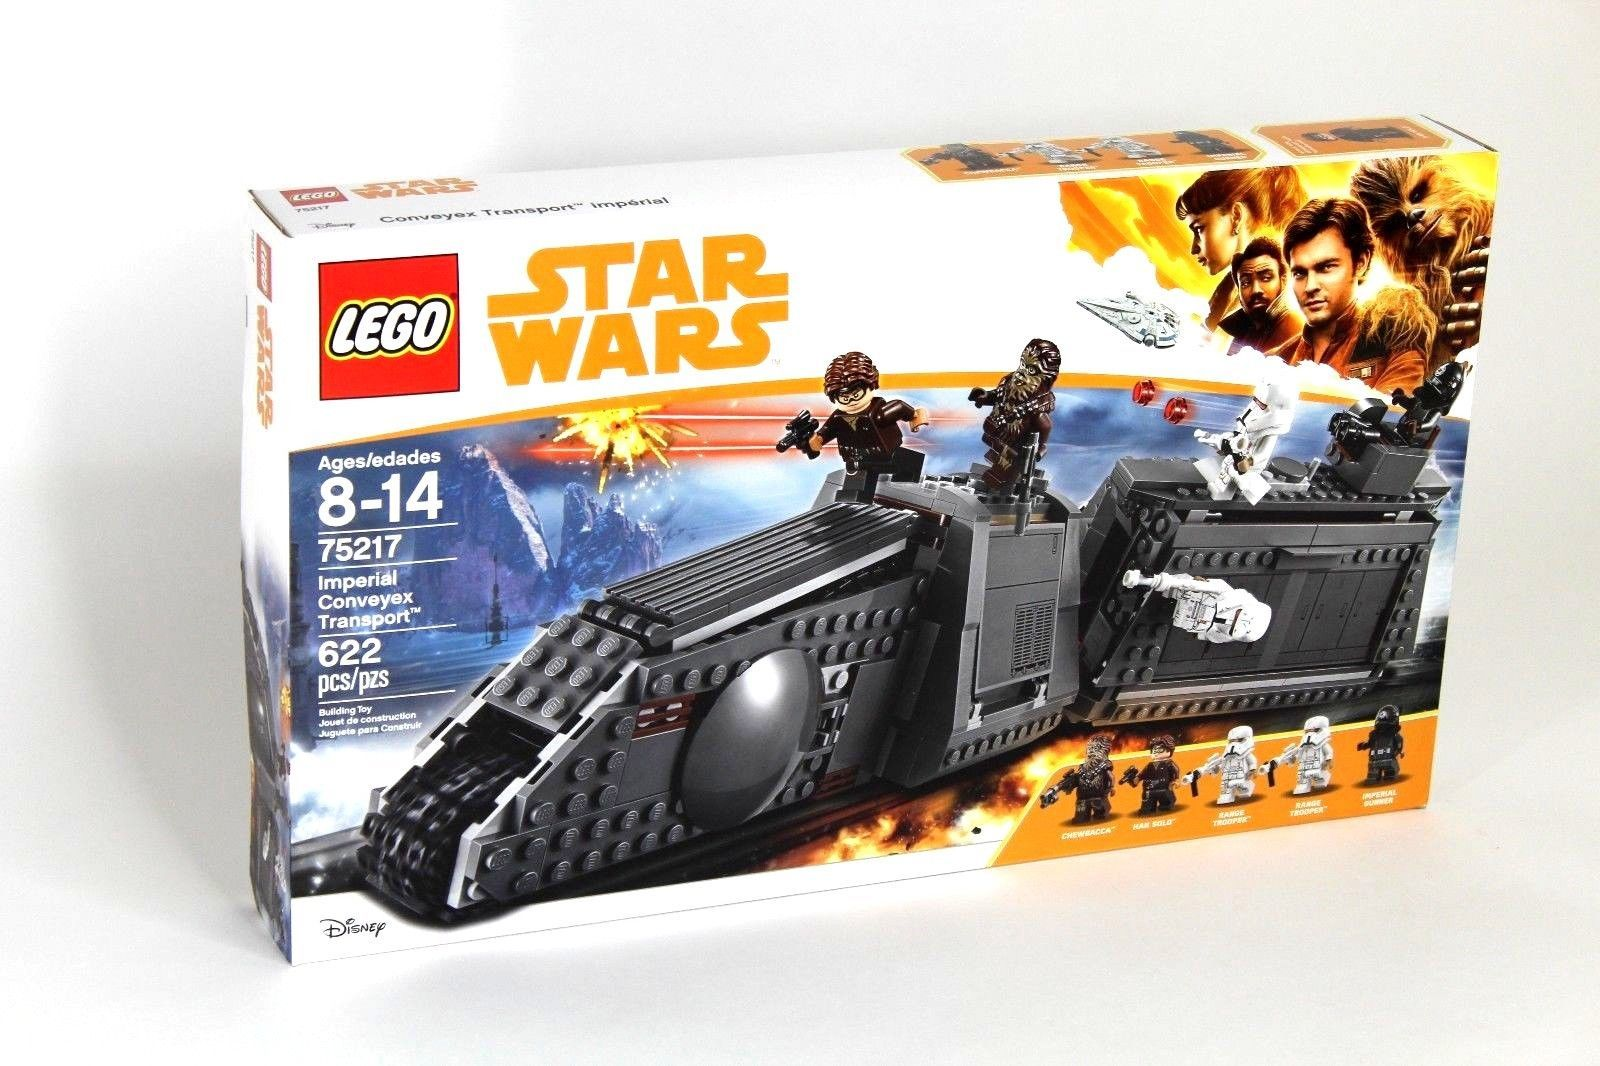 LEGO 75217 Star Wars Imperial Convex Transport [New] Building Set